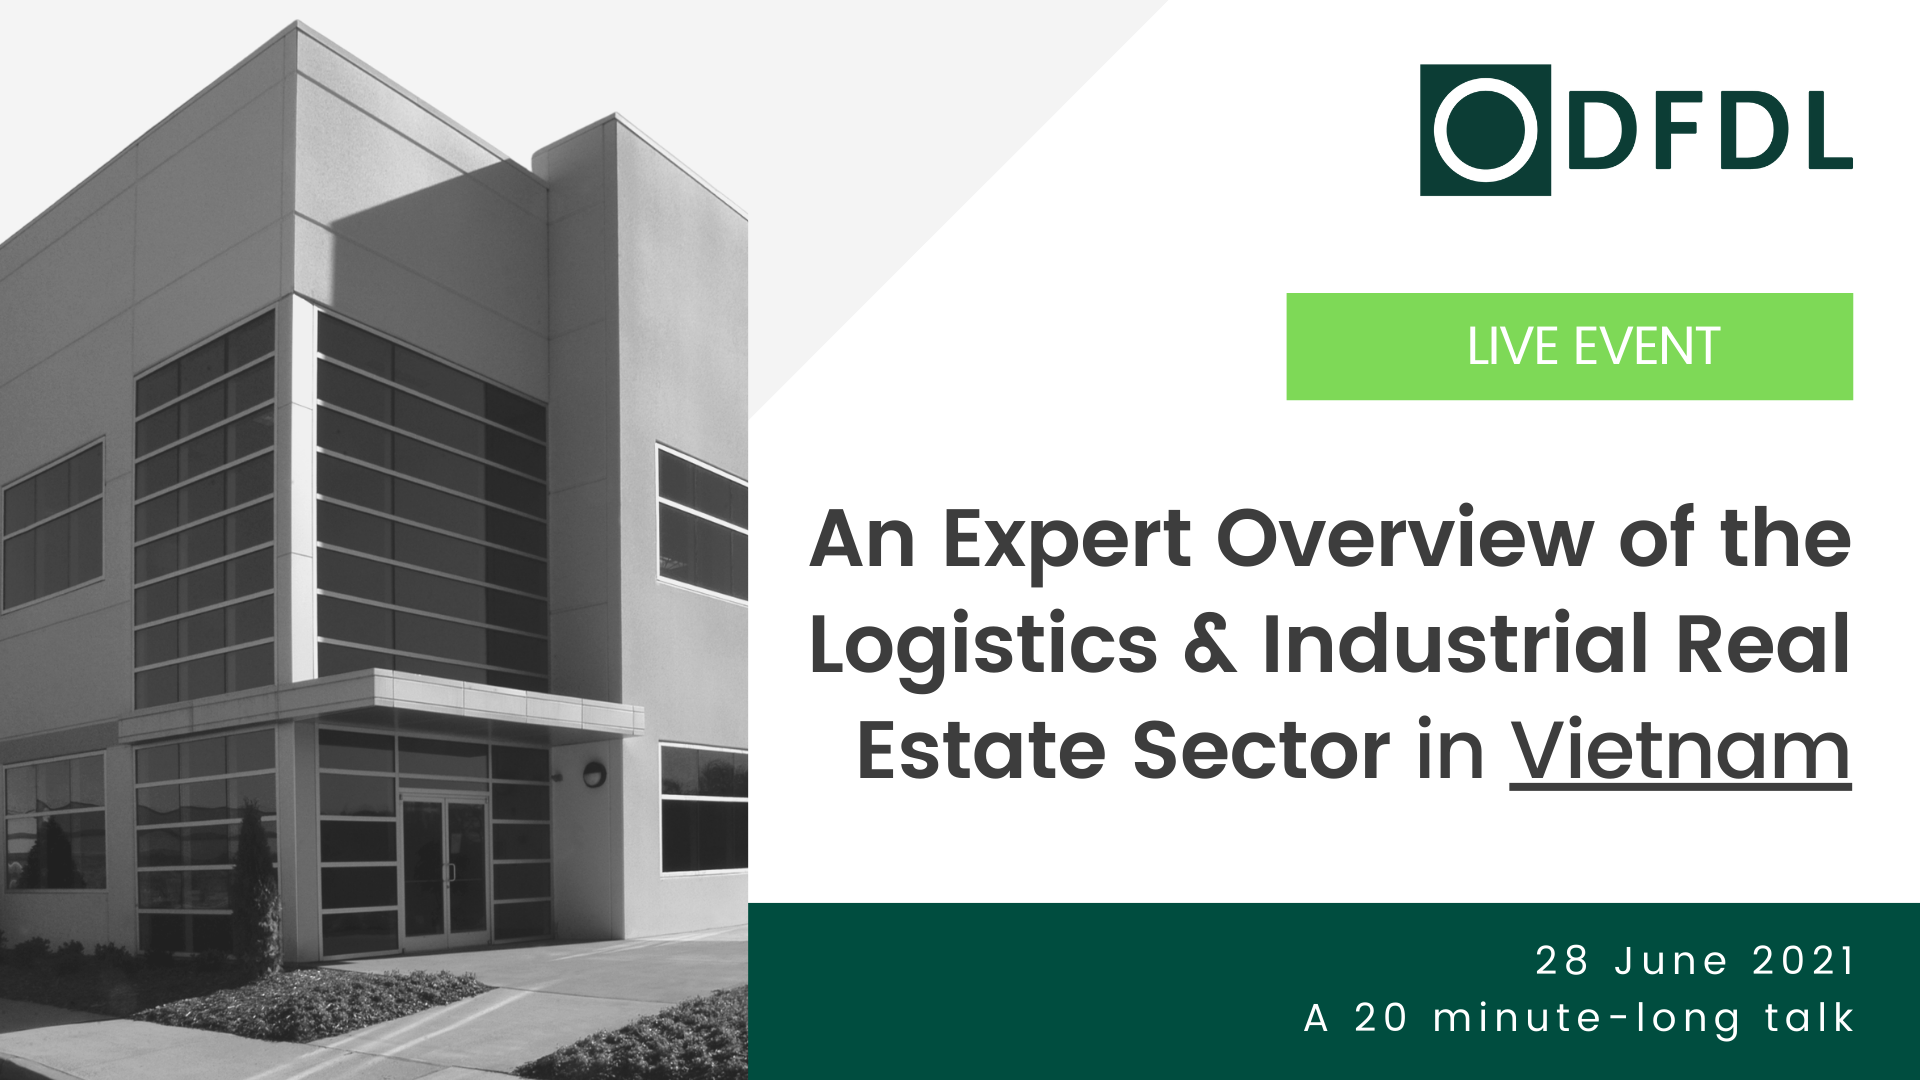 An Expert Overview of the Logistics & Industrial Real Estate Sector in Vietnam